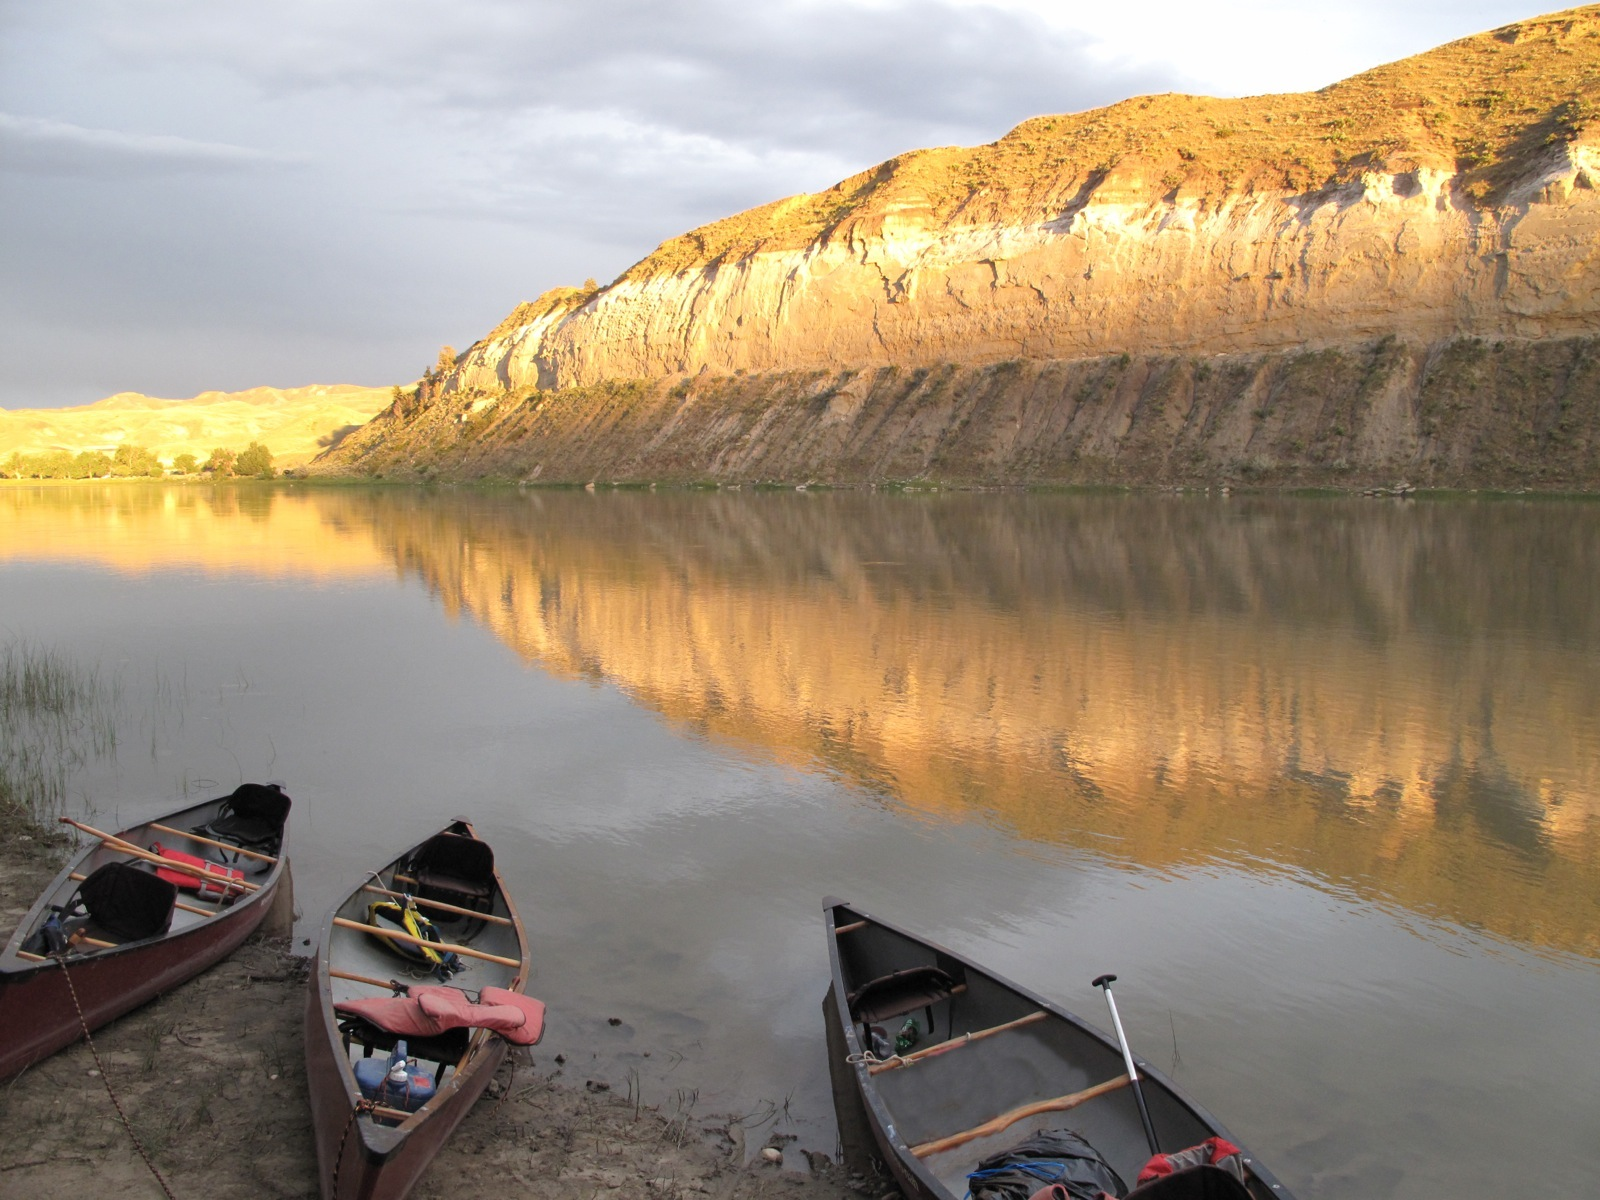 The calm waters of the Missouri reflect the White Cliffs at sunset near Judith Landing.